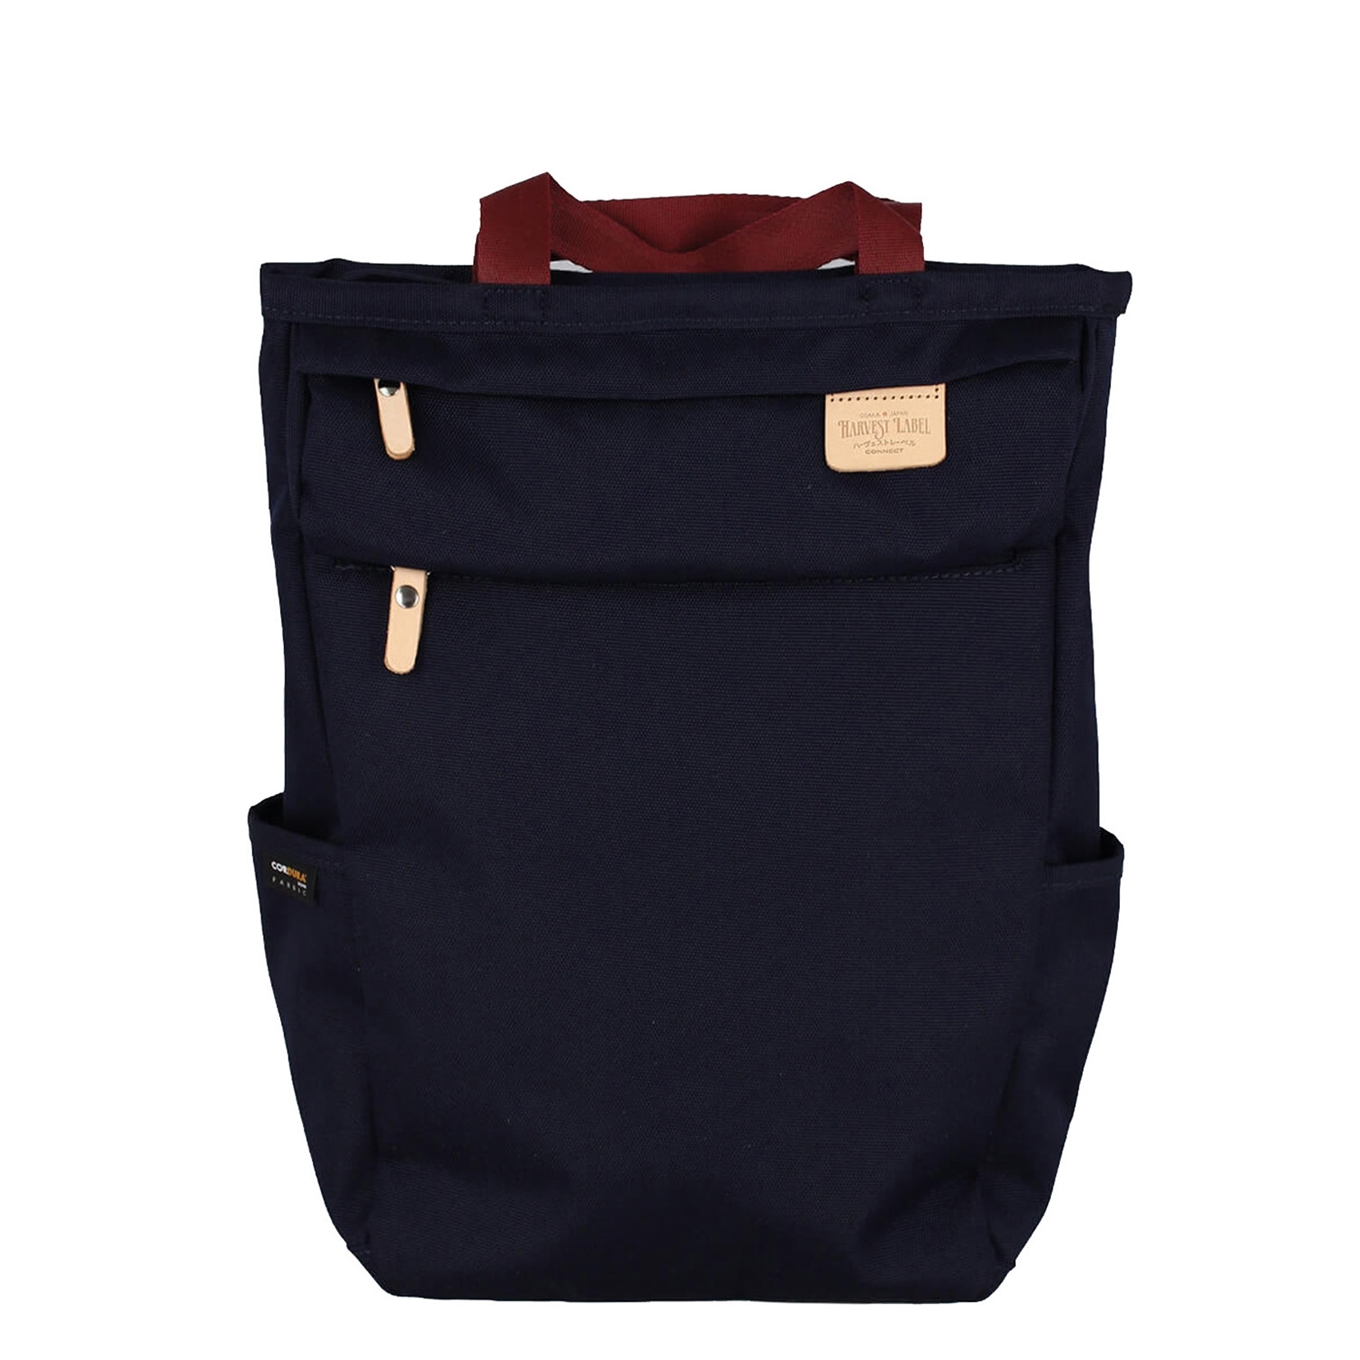 Harvest Label Kuju Ruckpack navy